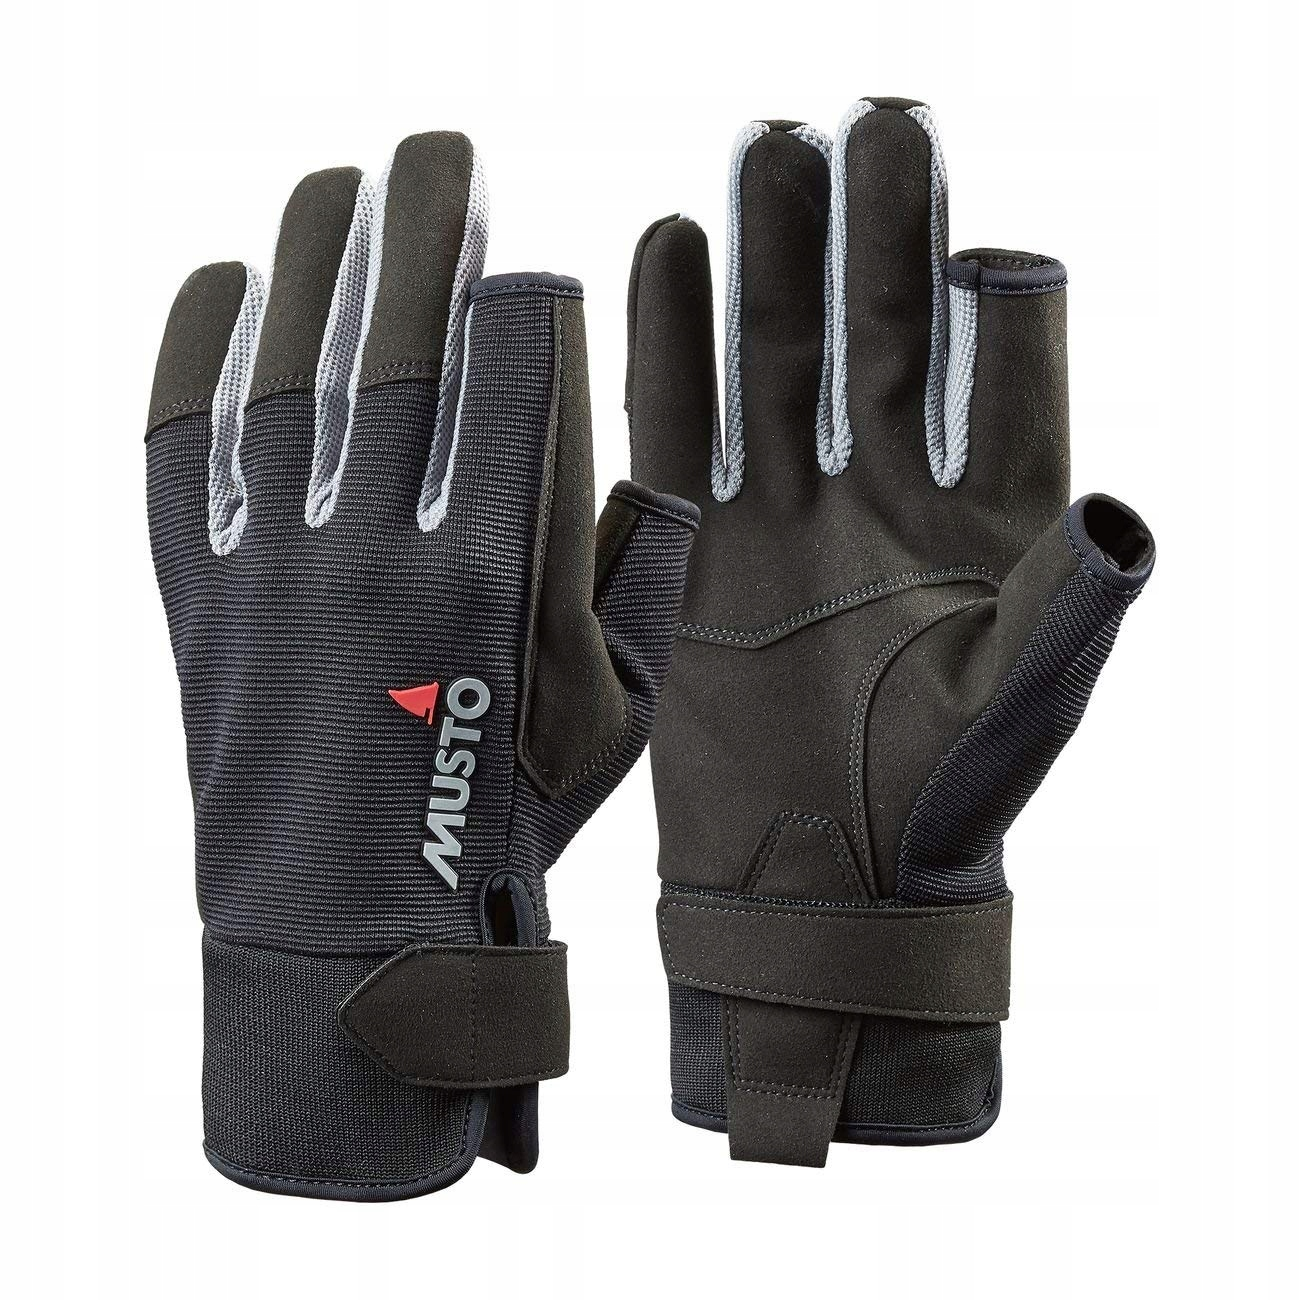 Plachtenie rukavice MUSTO - AUGL002 Black LF.XL